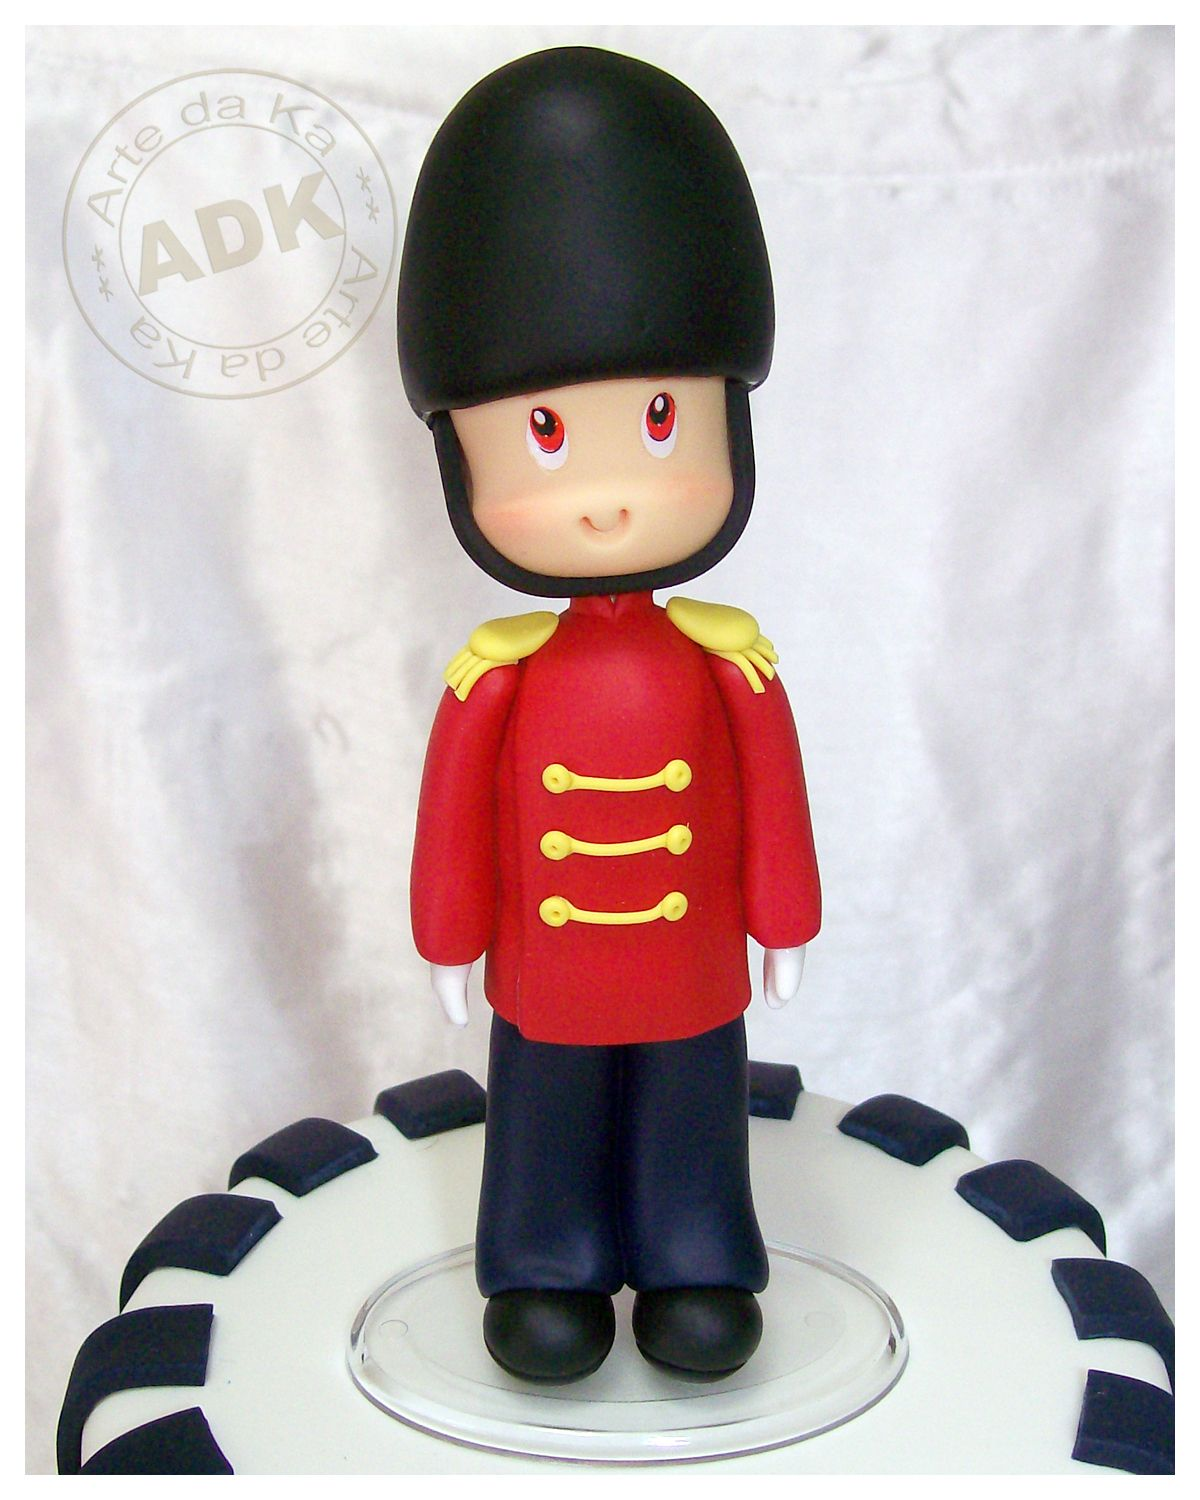 Toy soldier sugar figurine | London | Pinterest | Tortenfiguren und ...